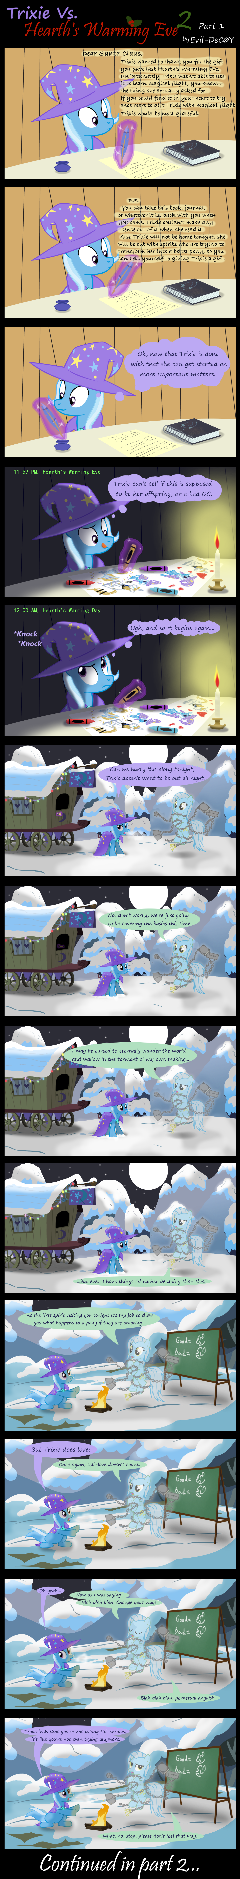 Trixie Vs. Hearth's Warming Eve 2 (part 1)